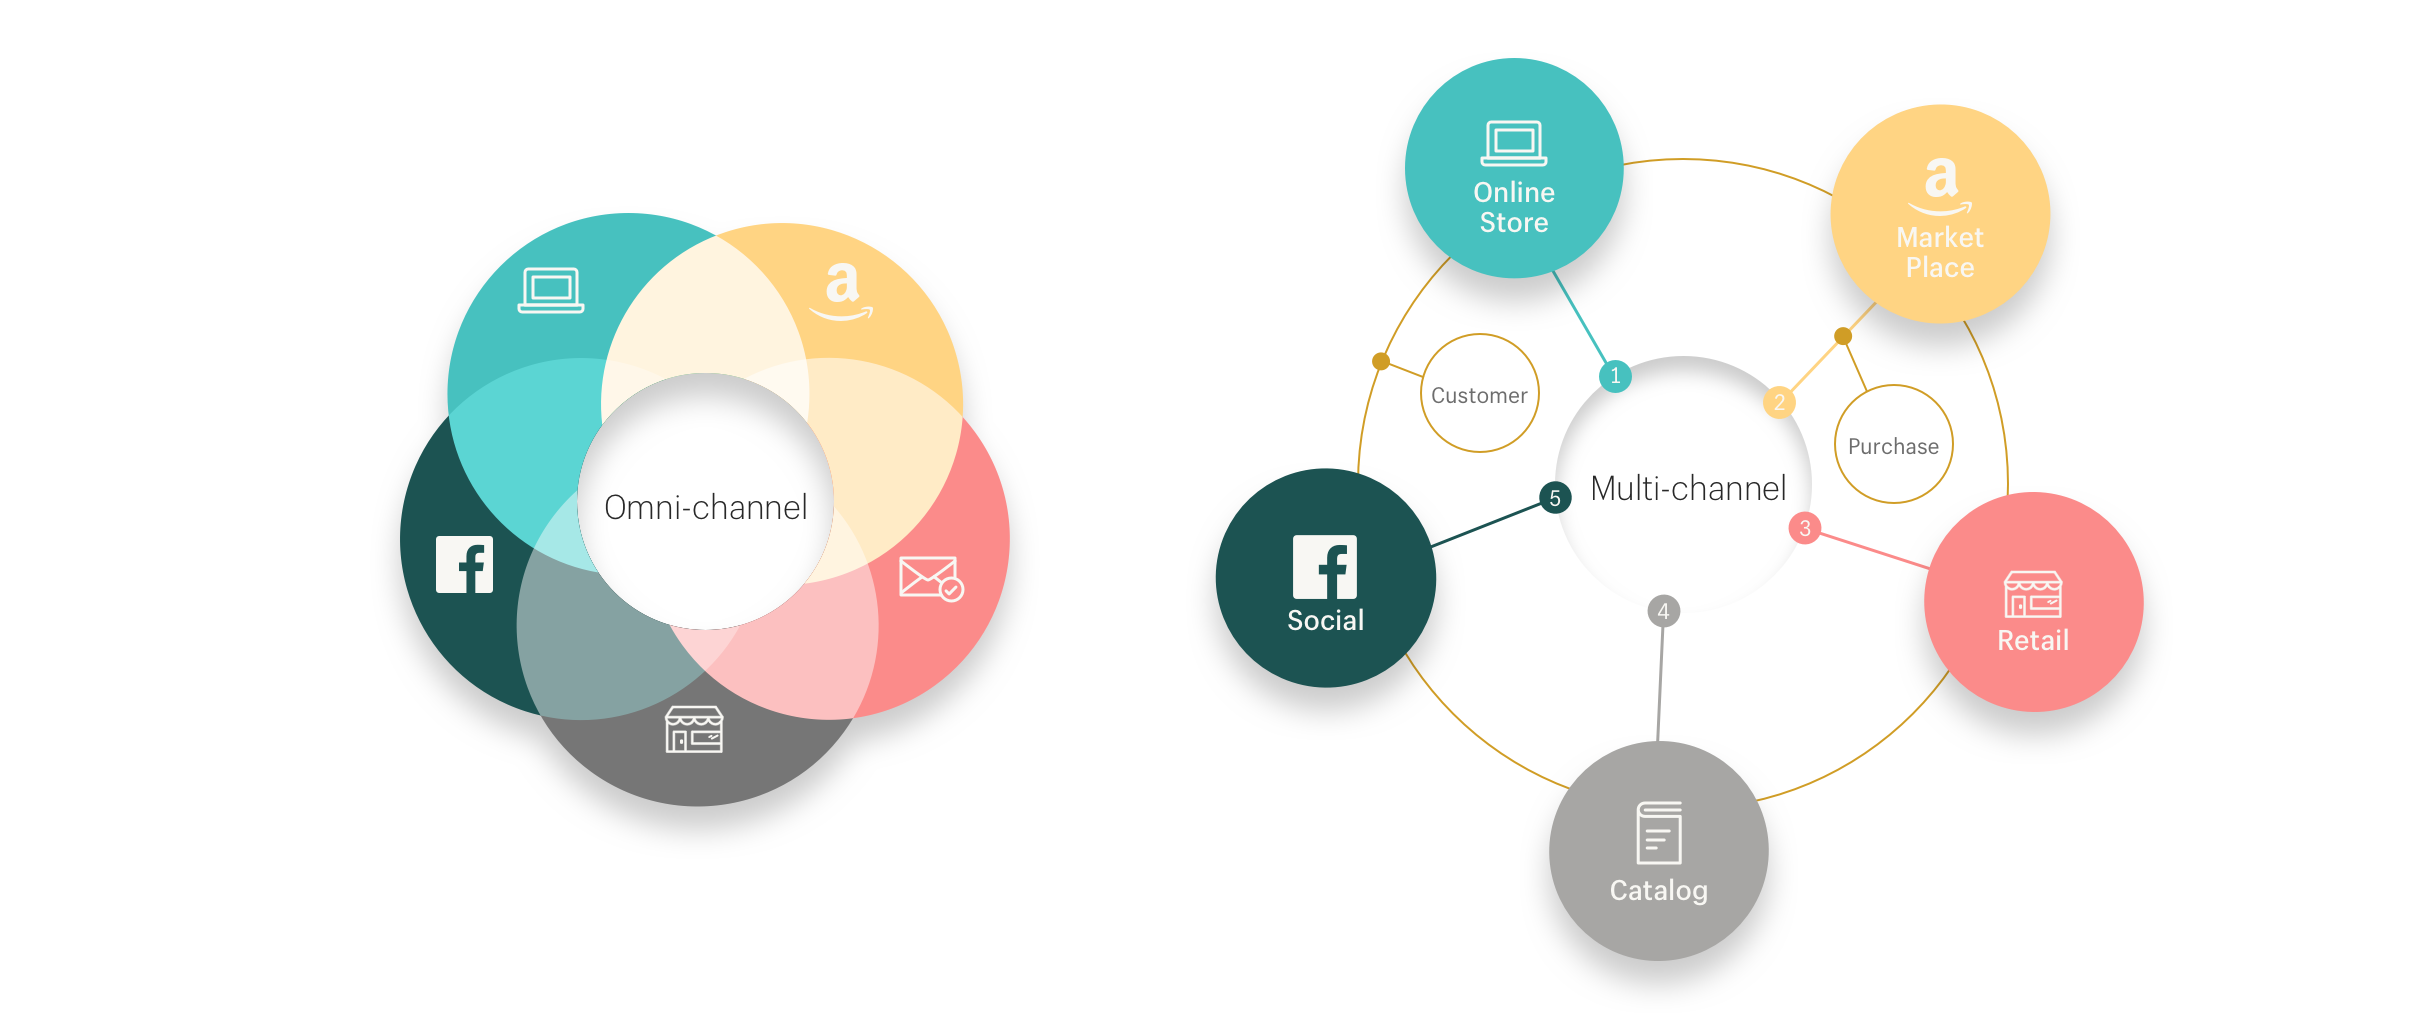 Omni-channel versus multi-channel overview